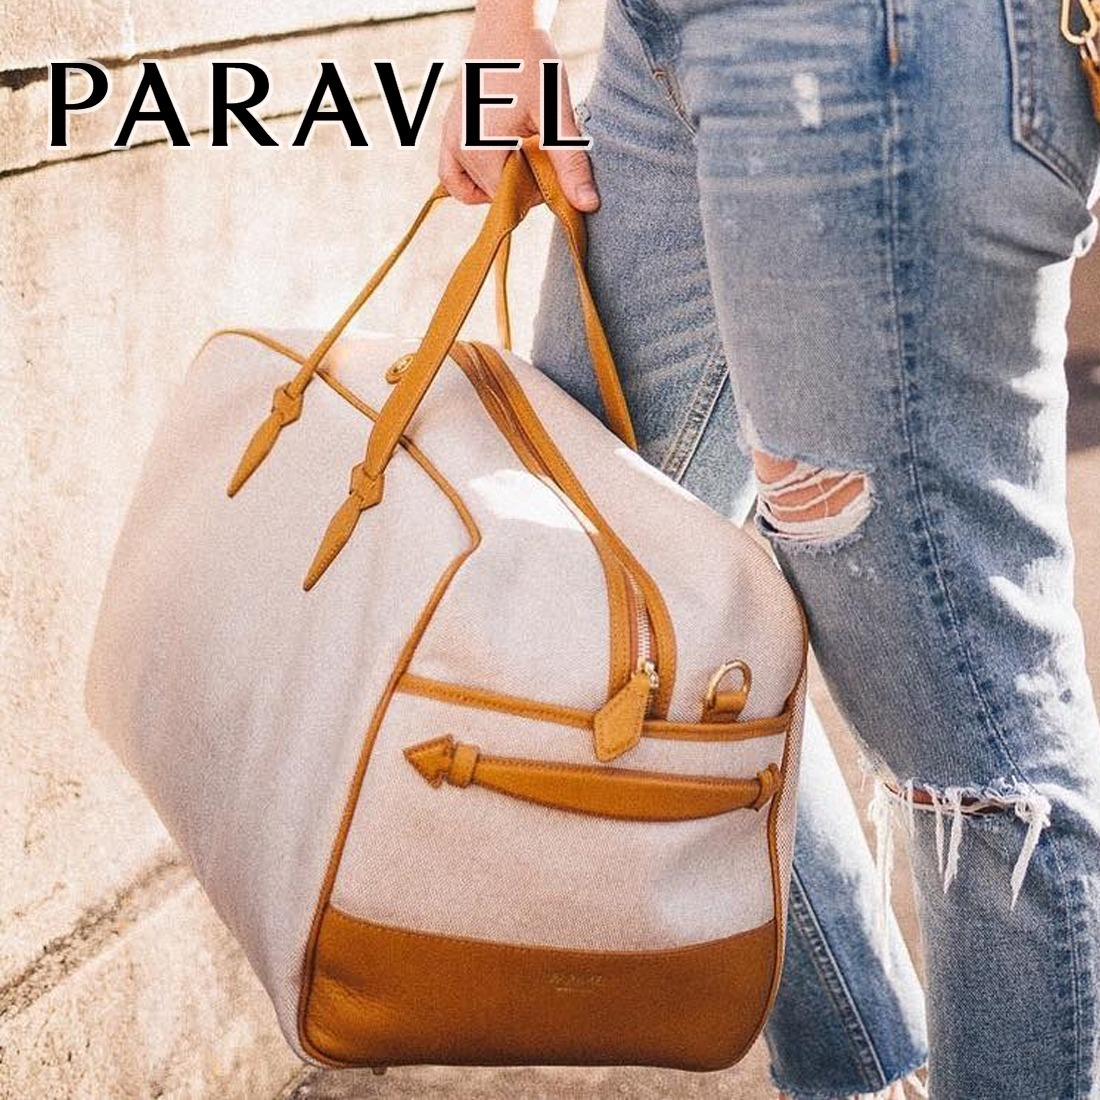 shop paravel bags